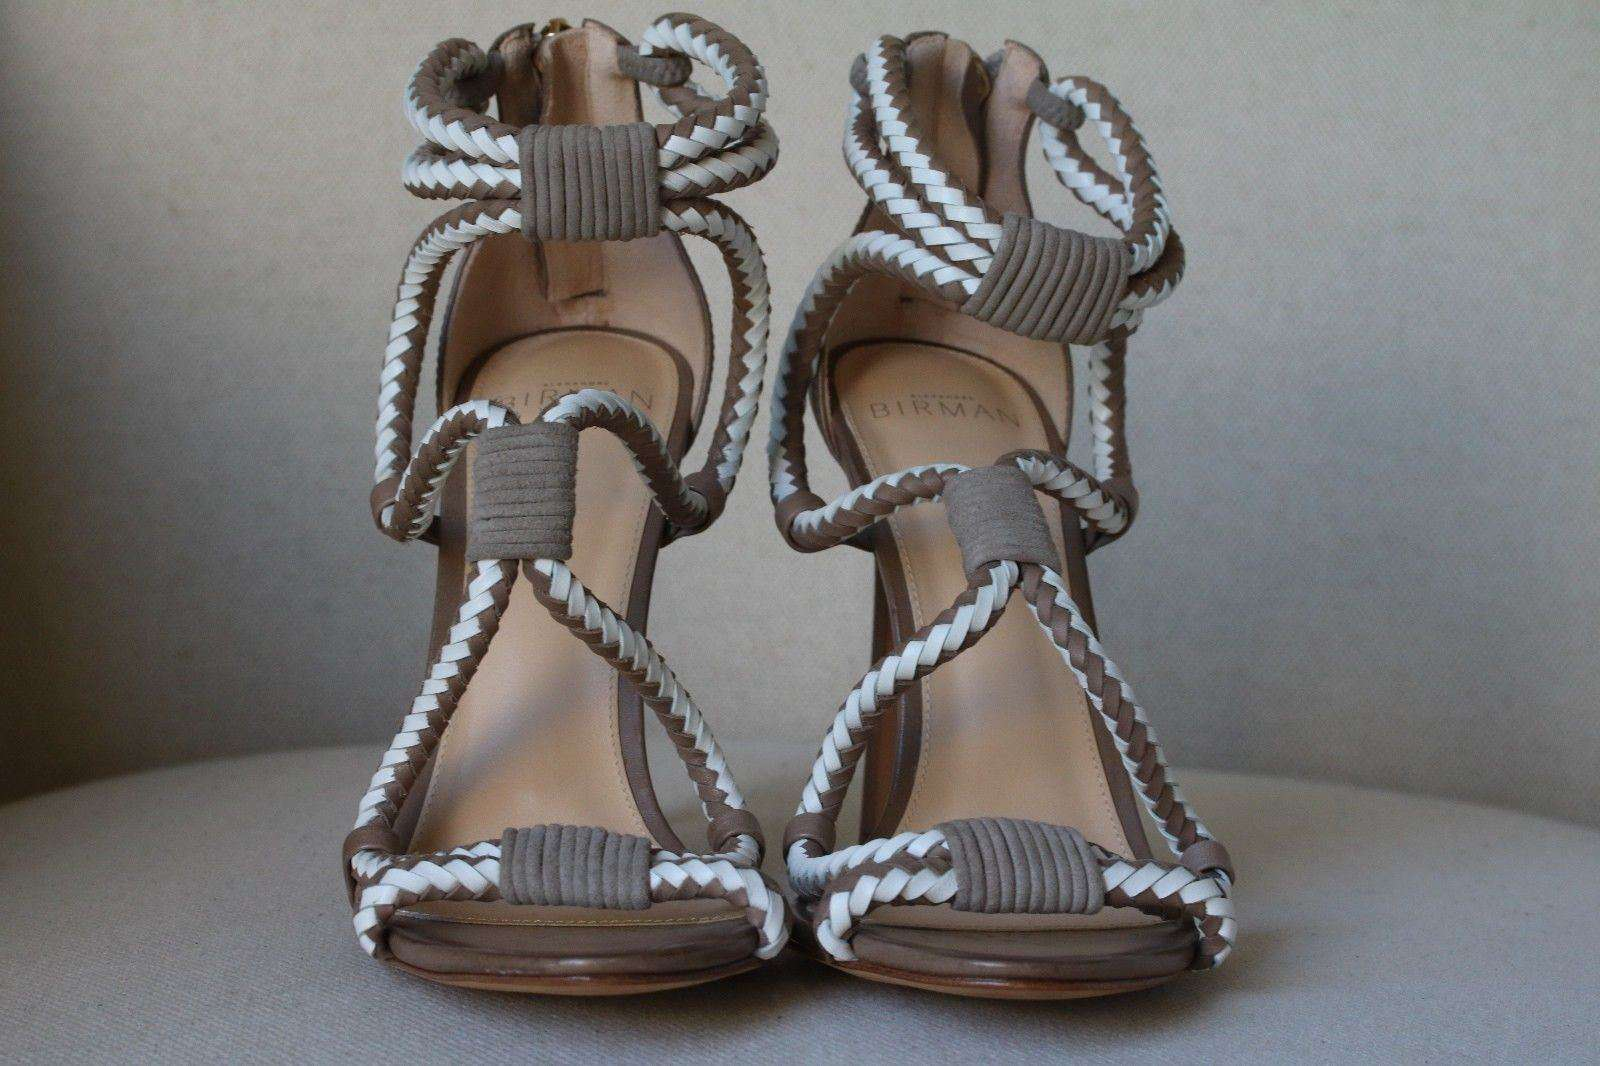 ALEXANDRE BIRMAN BRAIDED TWO-TONE SANDALS HEELS EU 38 UK 5 US 8